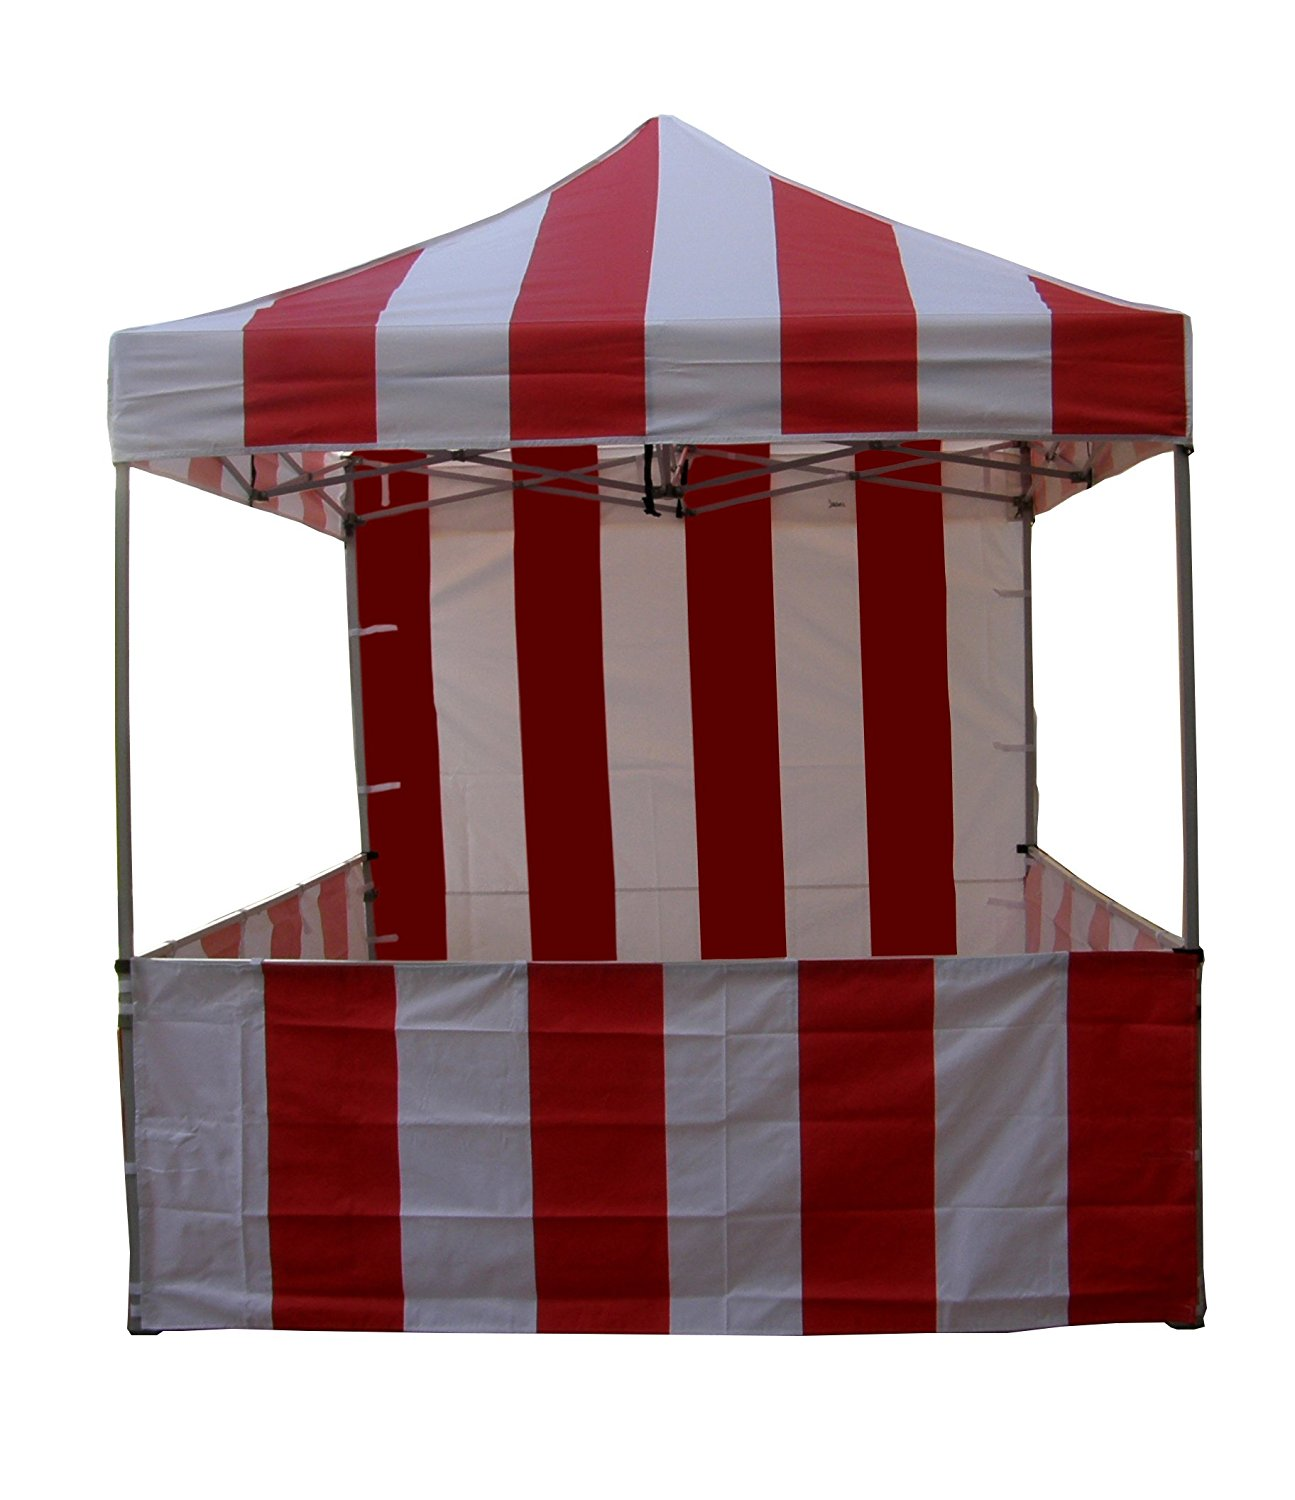 Cheap 8x8 Pop Up Canopy Find 8x8 Pop Up Canopy Deals On Line At